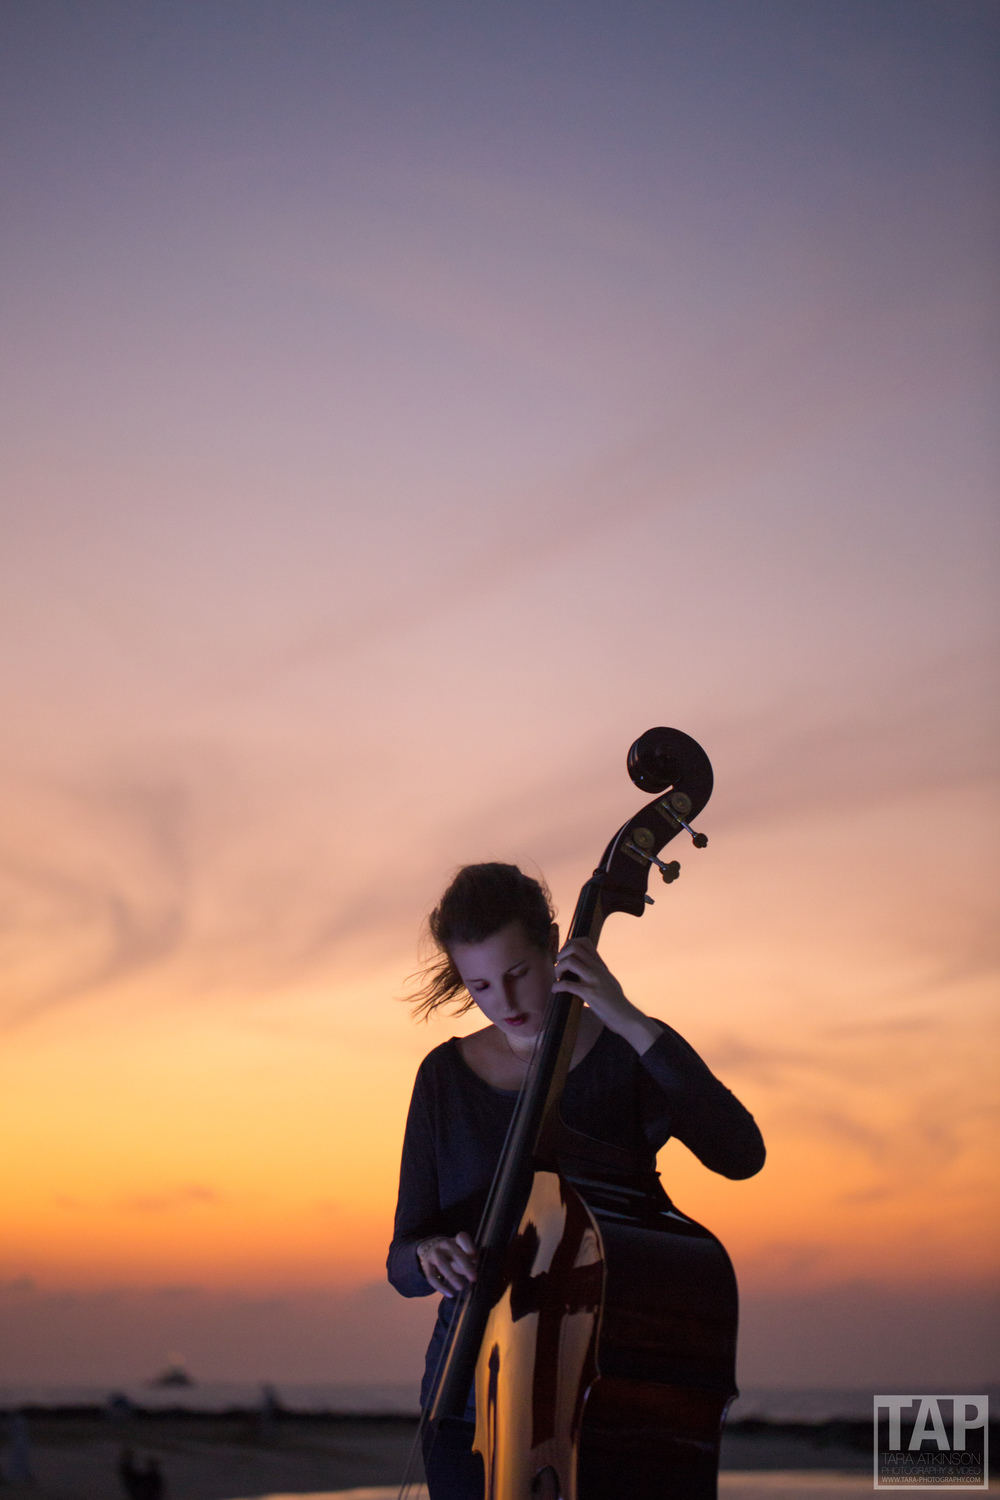 Cello Player on the beach, Dubai